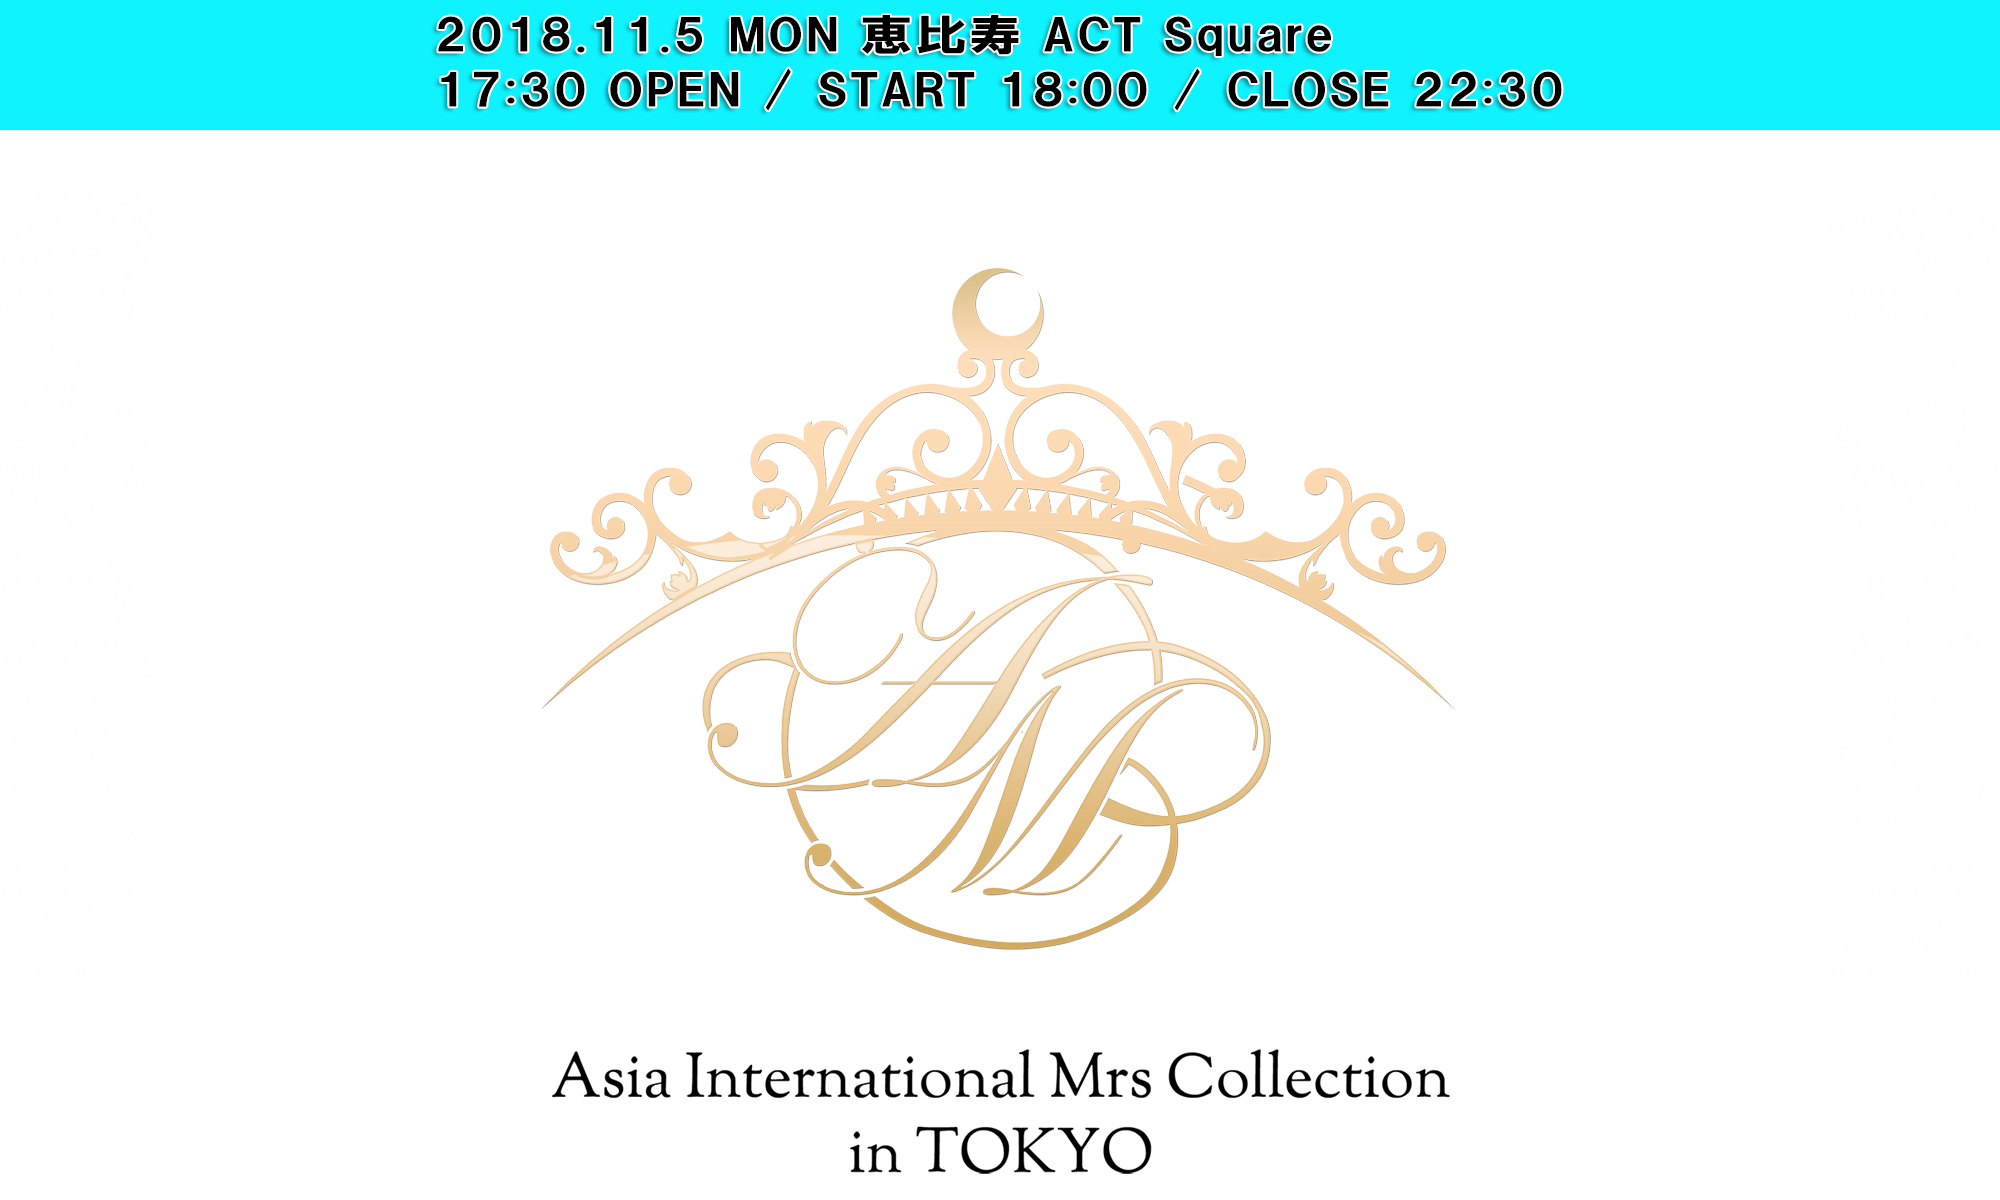 Asia International Mrs Collection in TOKYO